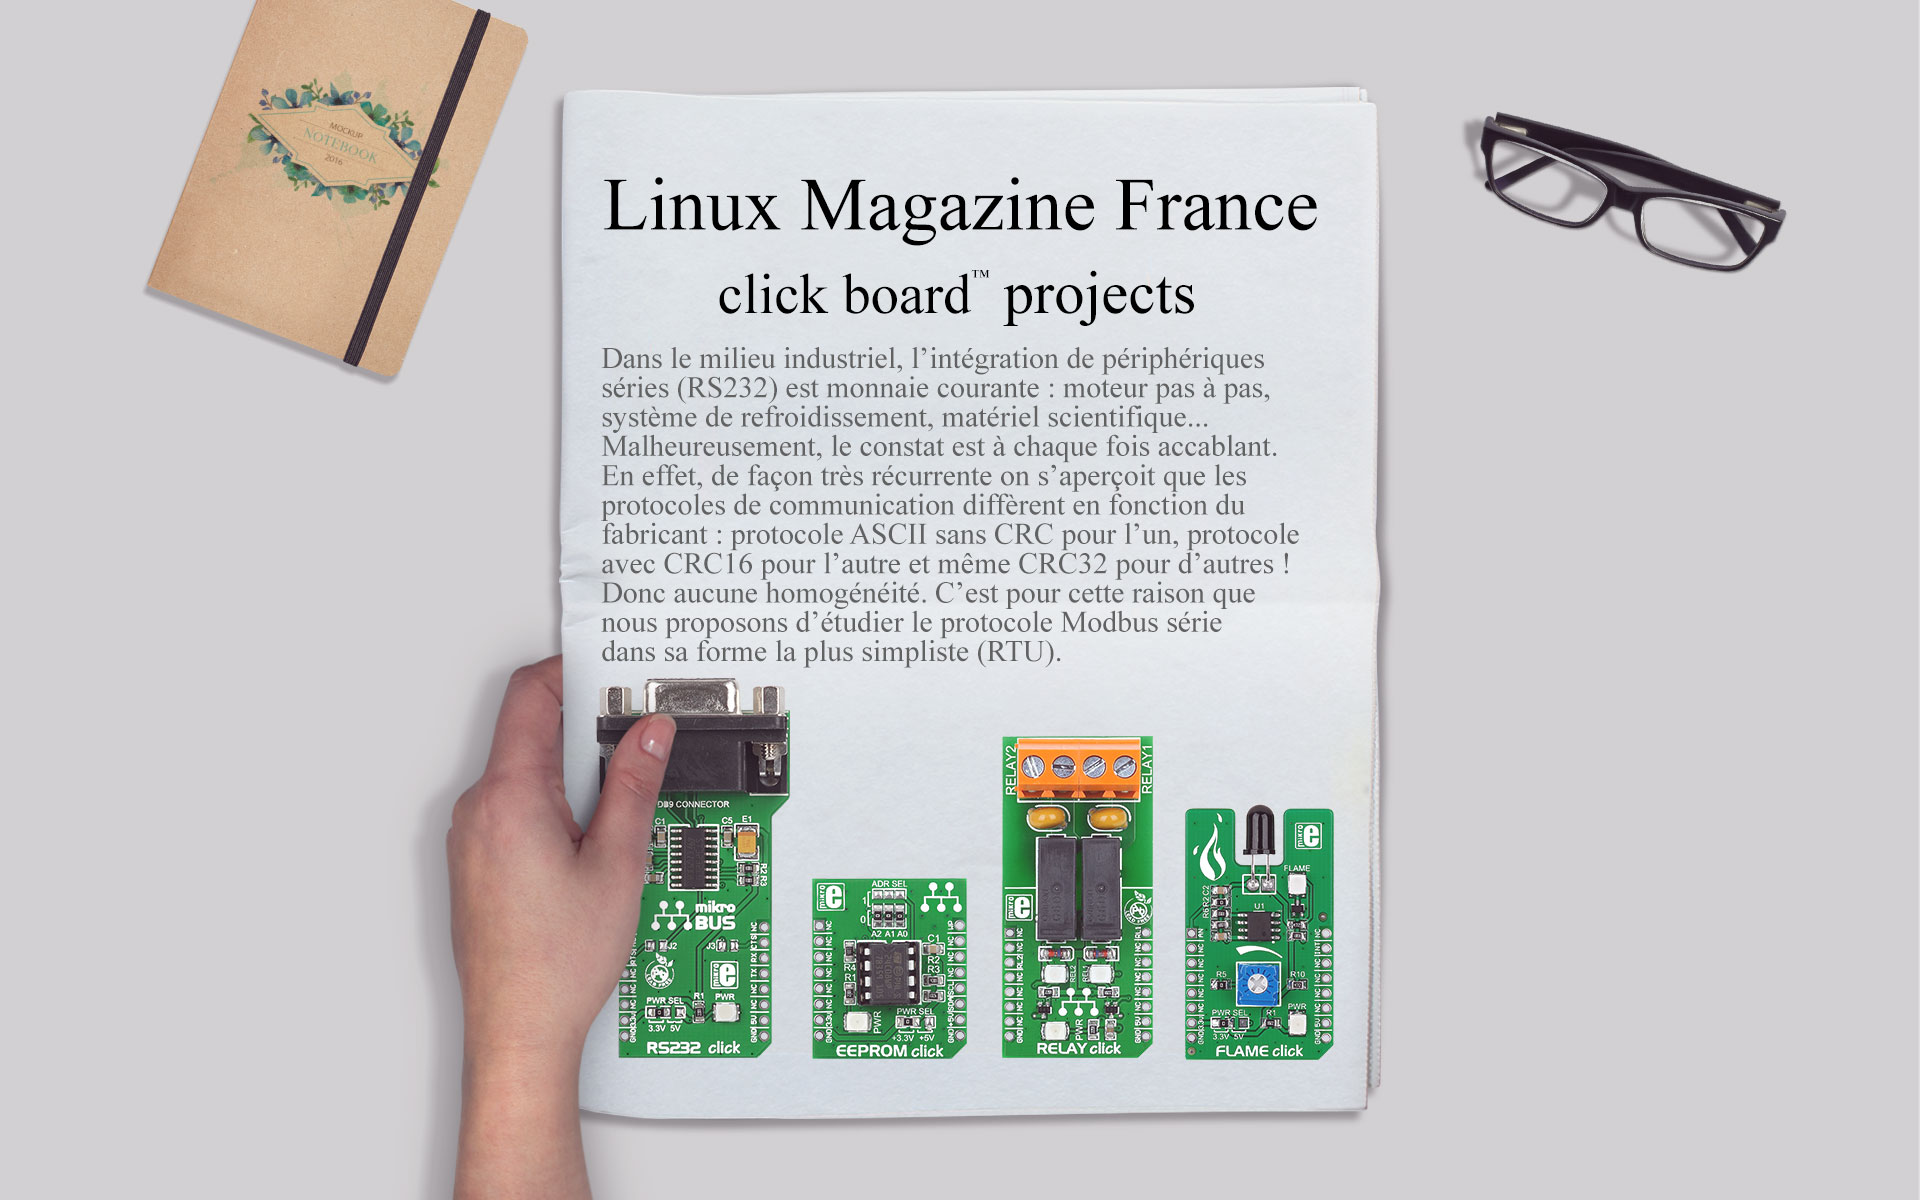 We are popular in France - article about click boards™ in Linux Magazine France